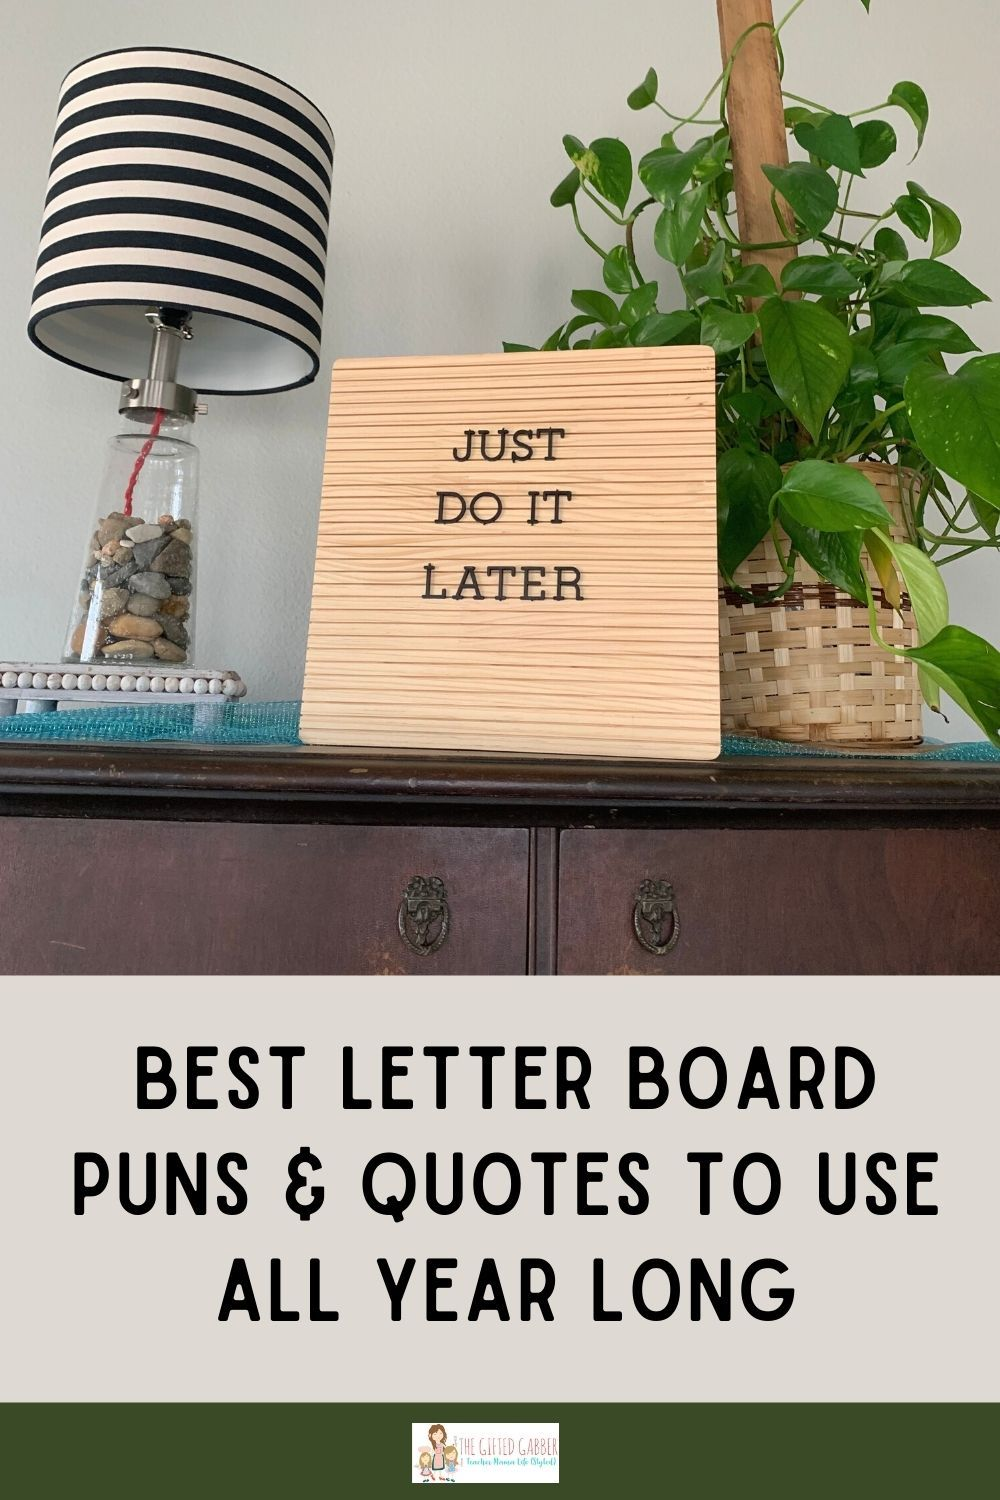 100 Funny Letter Board Quotes for All Year